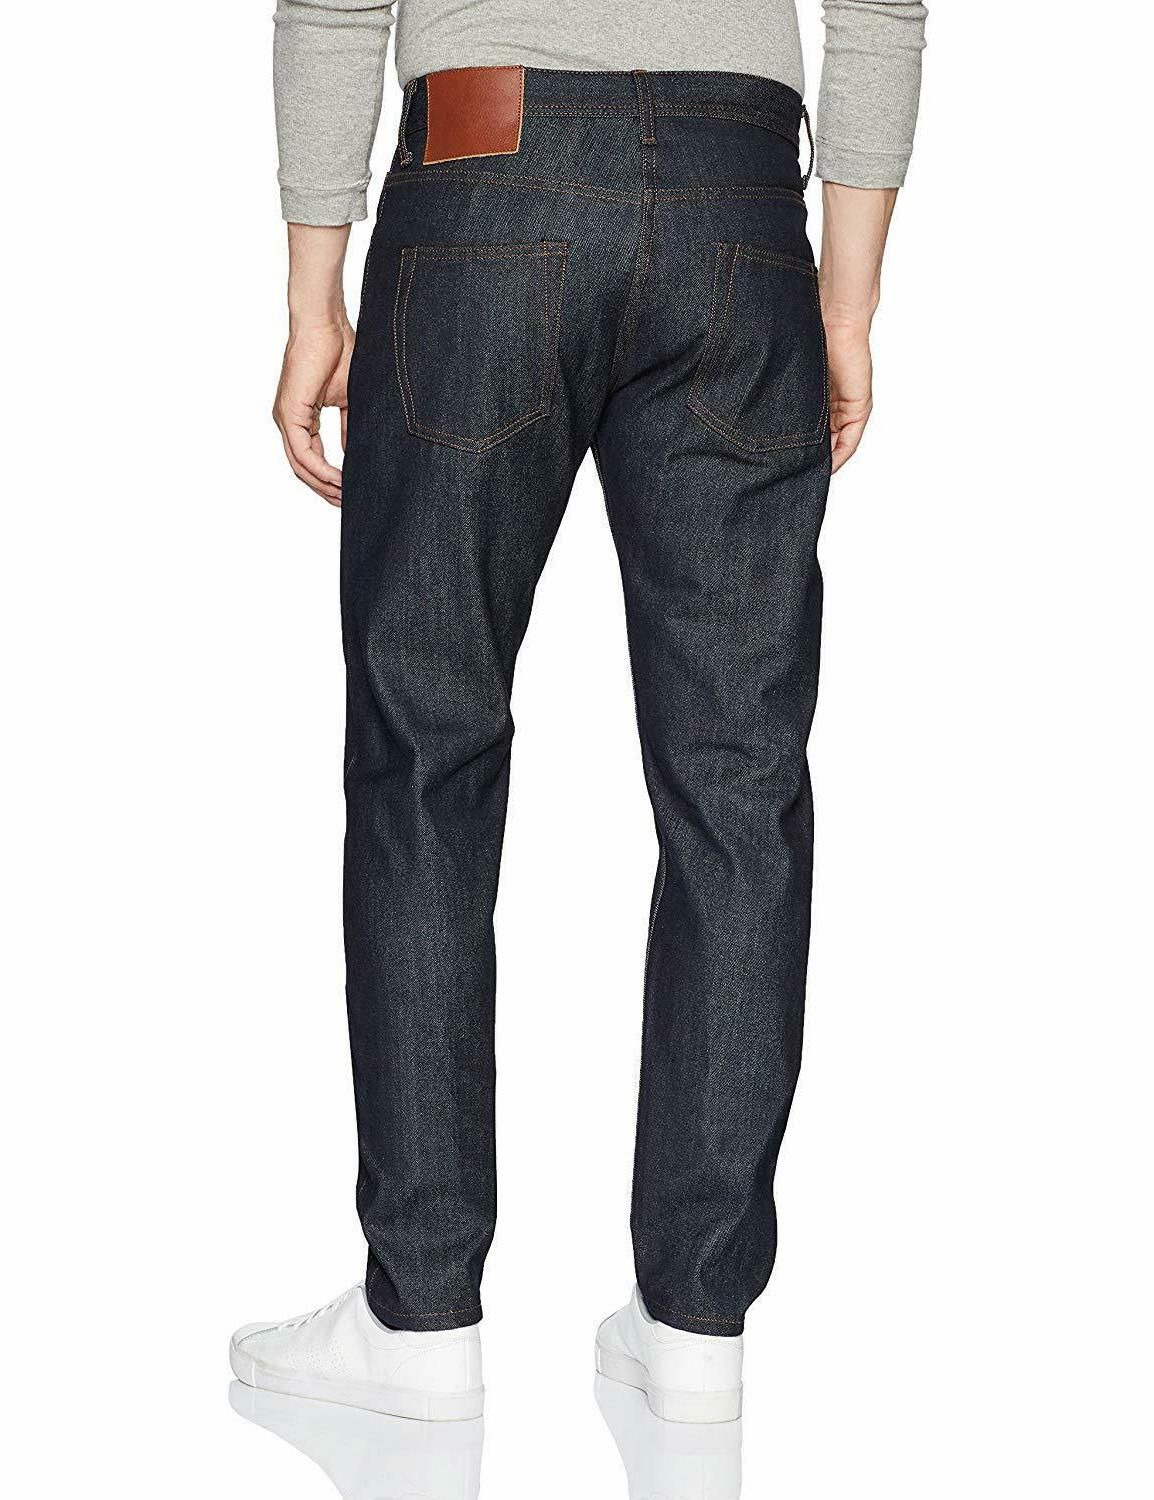 Unbranded* Ub601-Relaxed